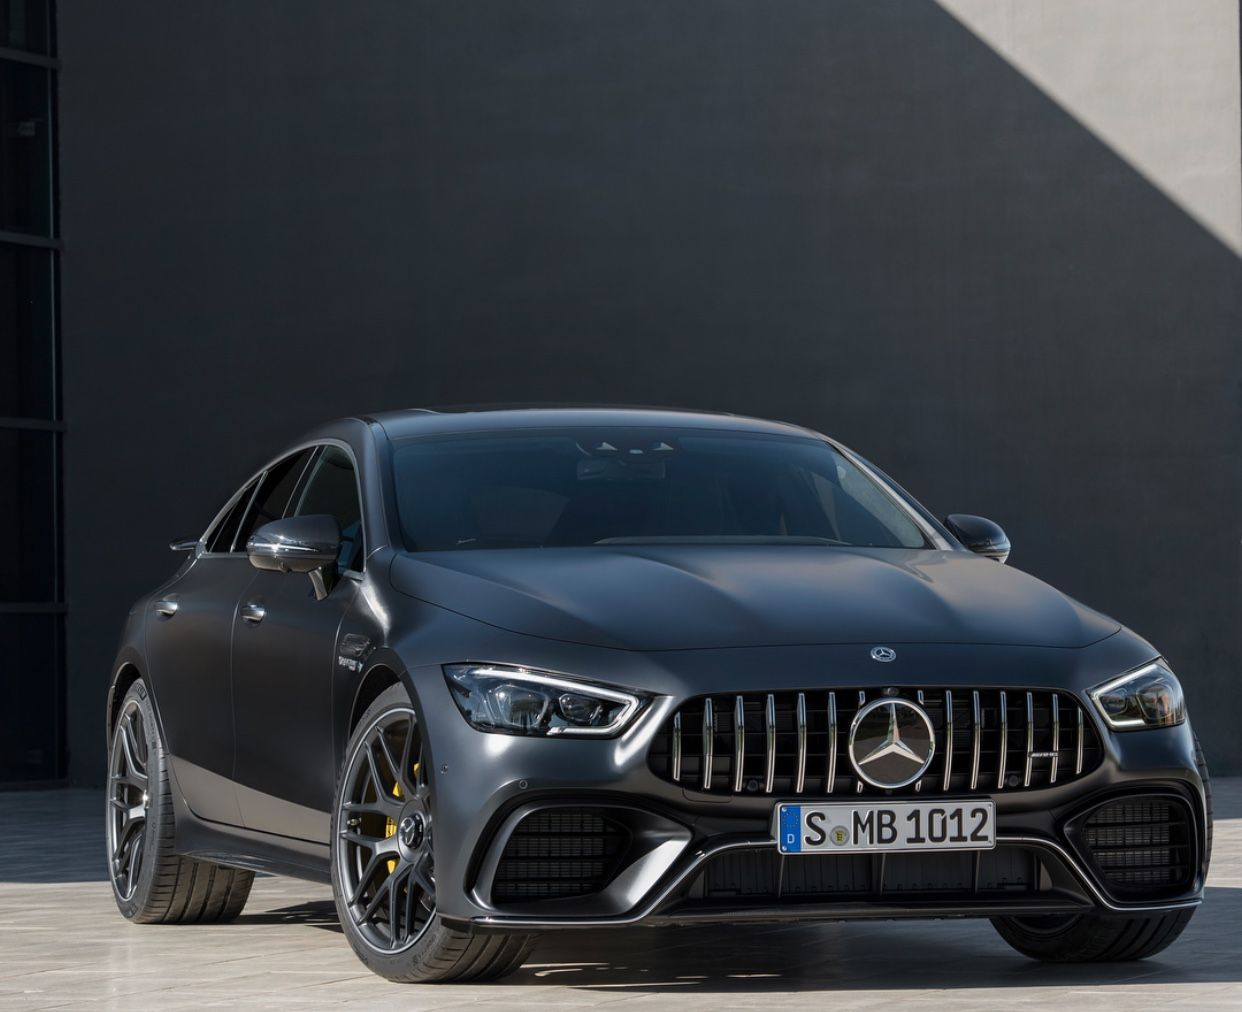 Mercedes Amg Gt63s Gt 4 Door Coupe Mercedes Benz Amg